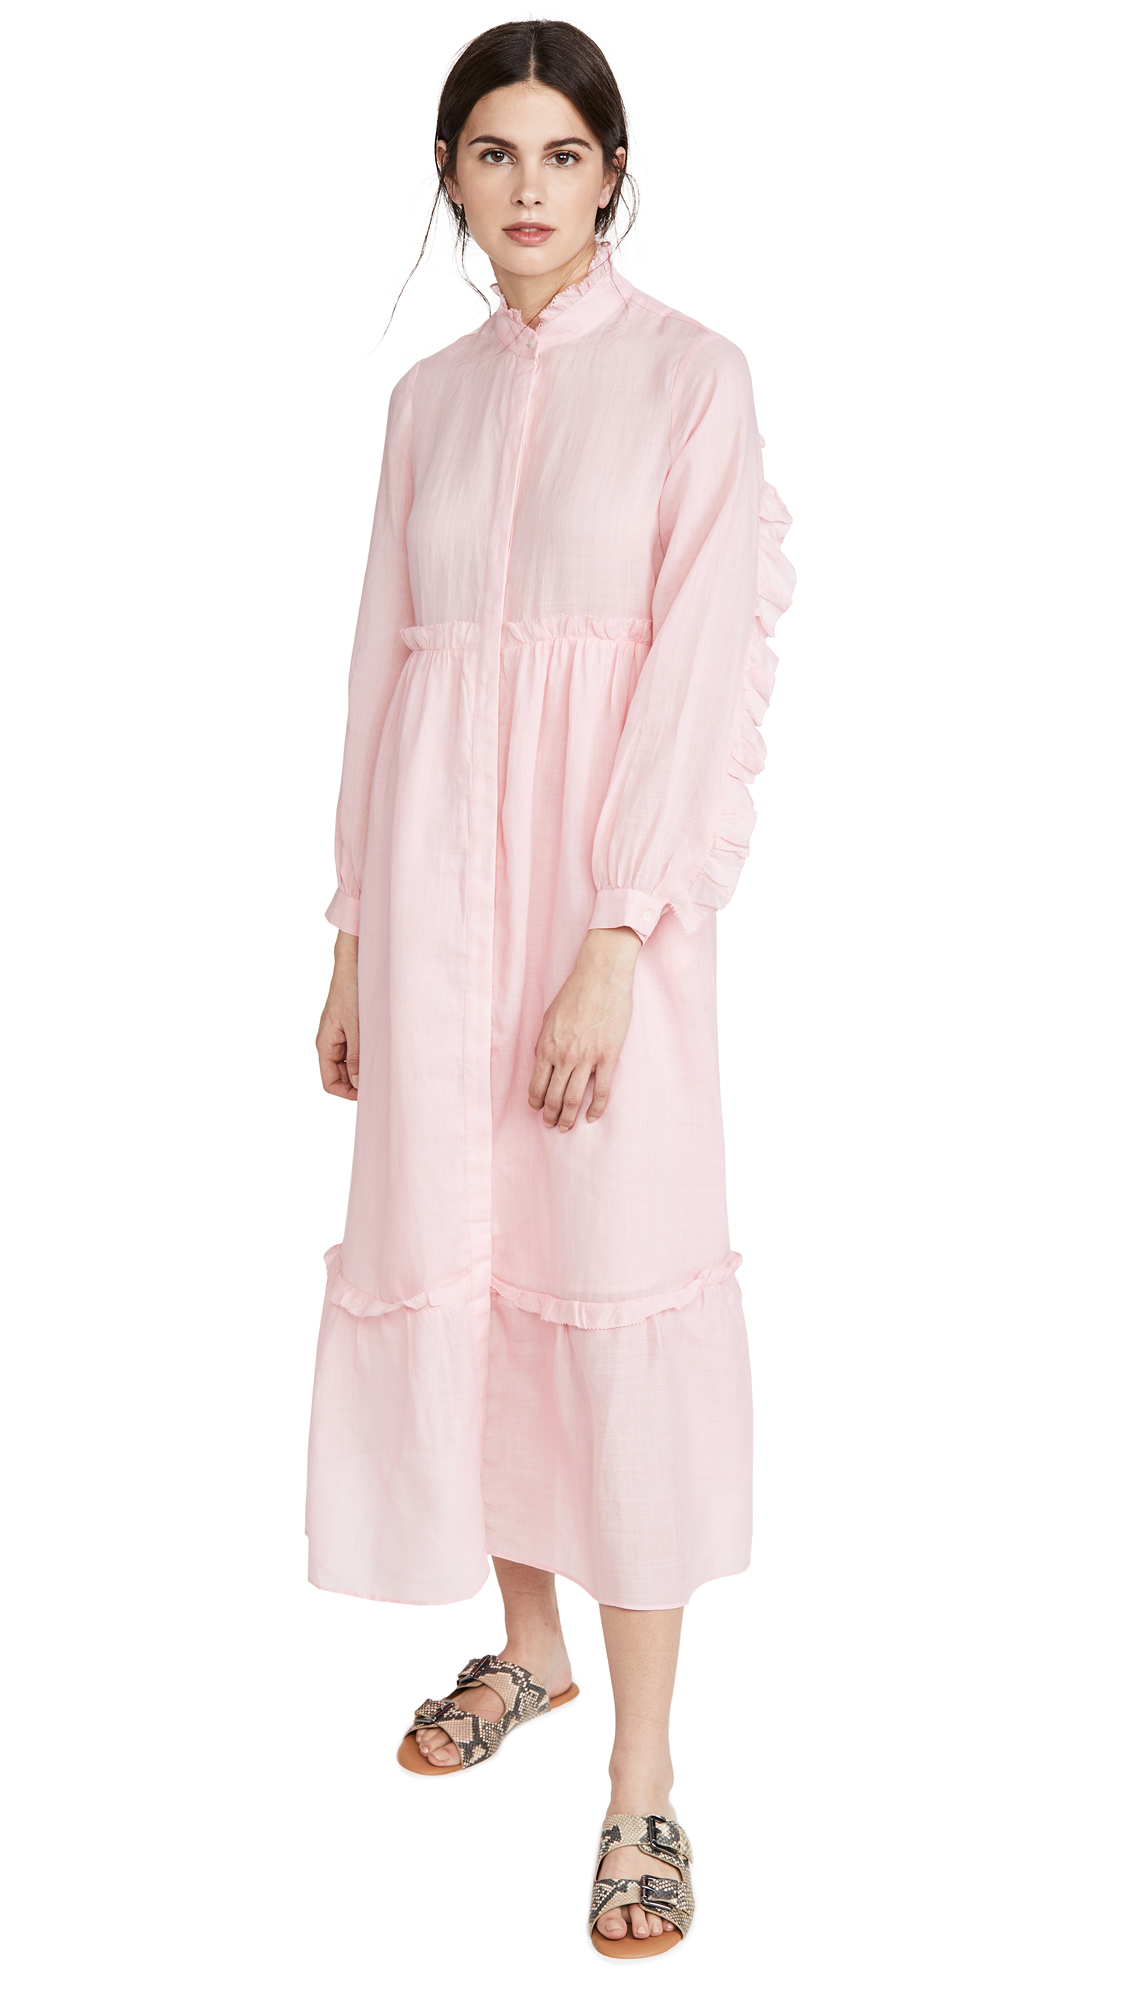 Sea Lucy Long Sleeve Maxi Dress - 30% Off Sale